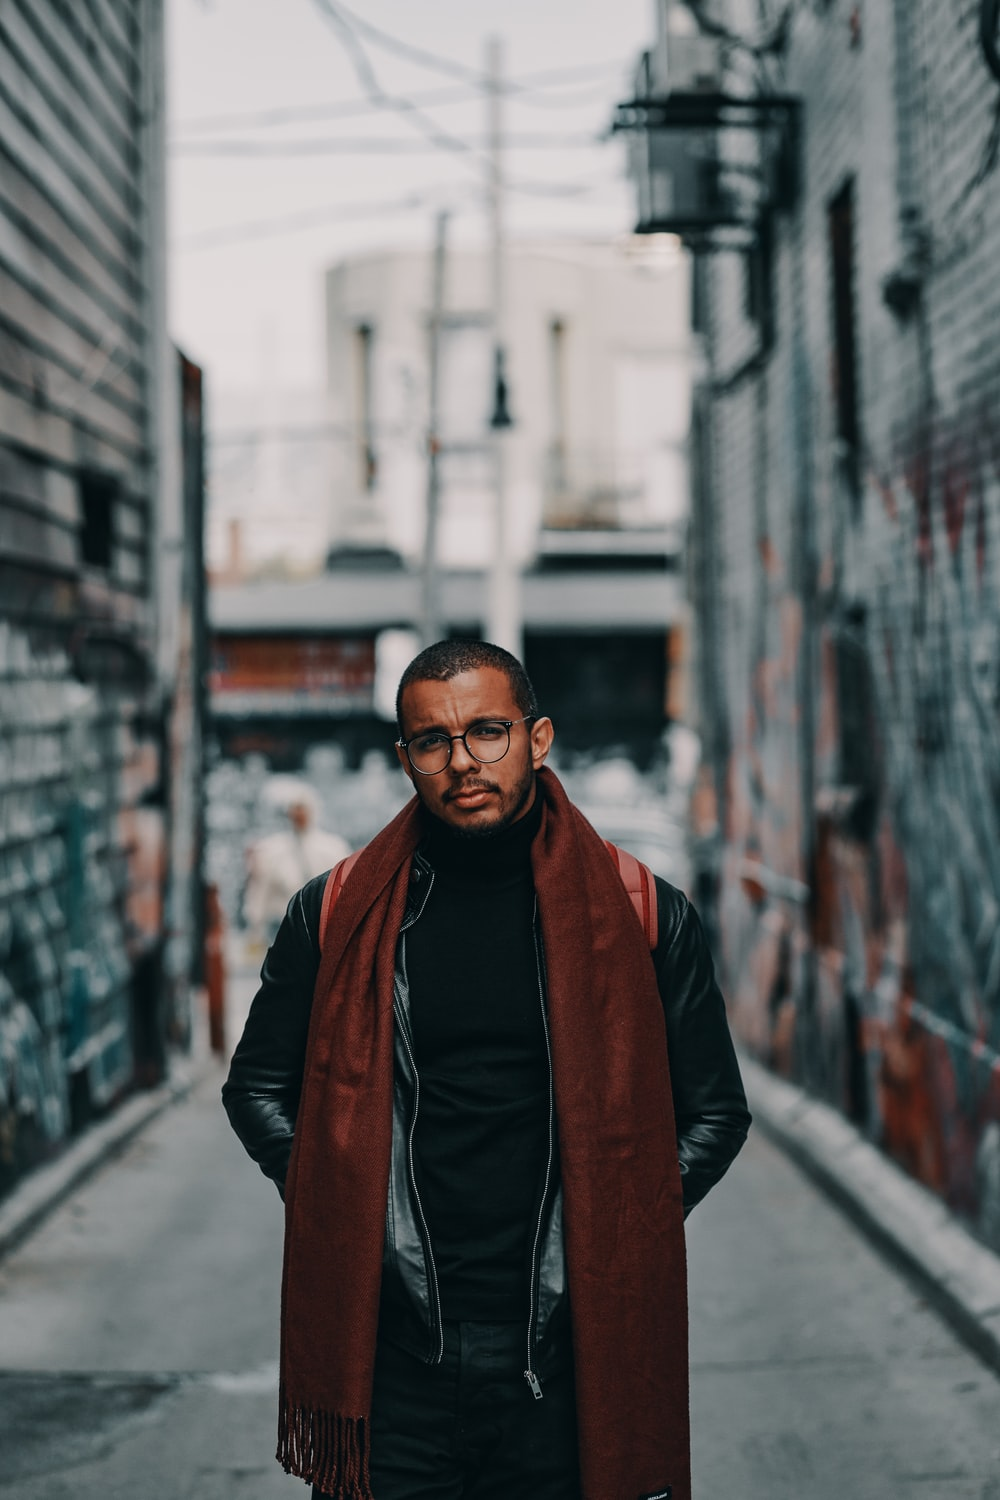 selective focus photo of man wearing brown scarf and black jacket